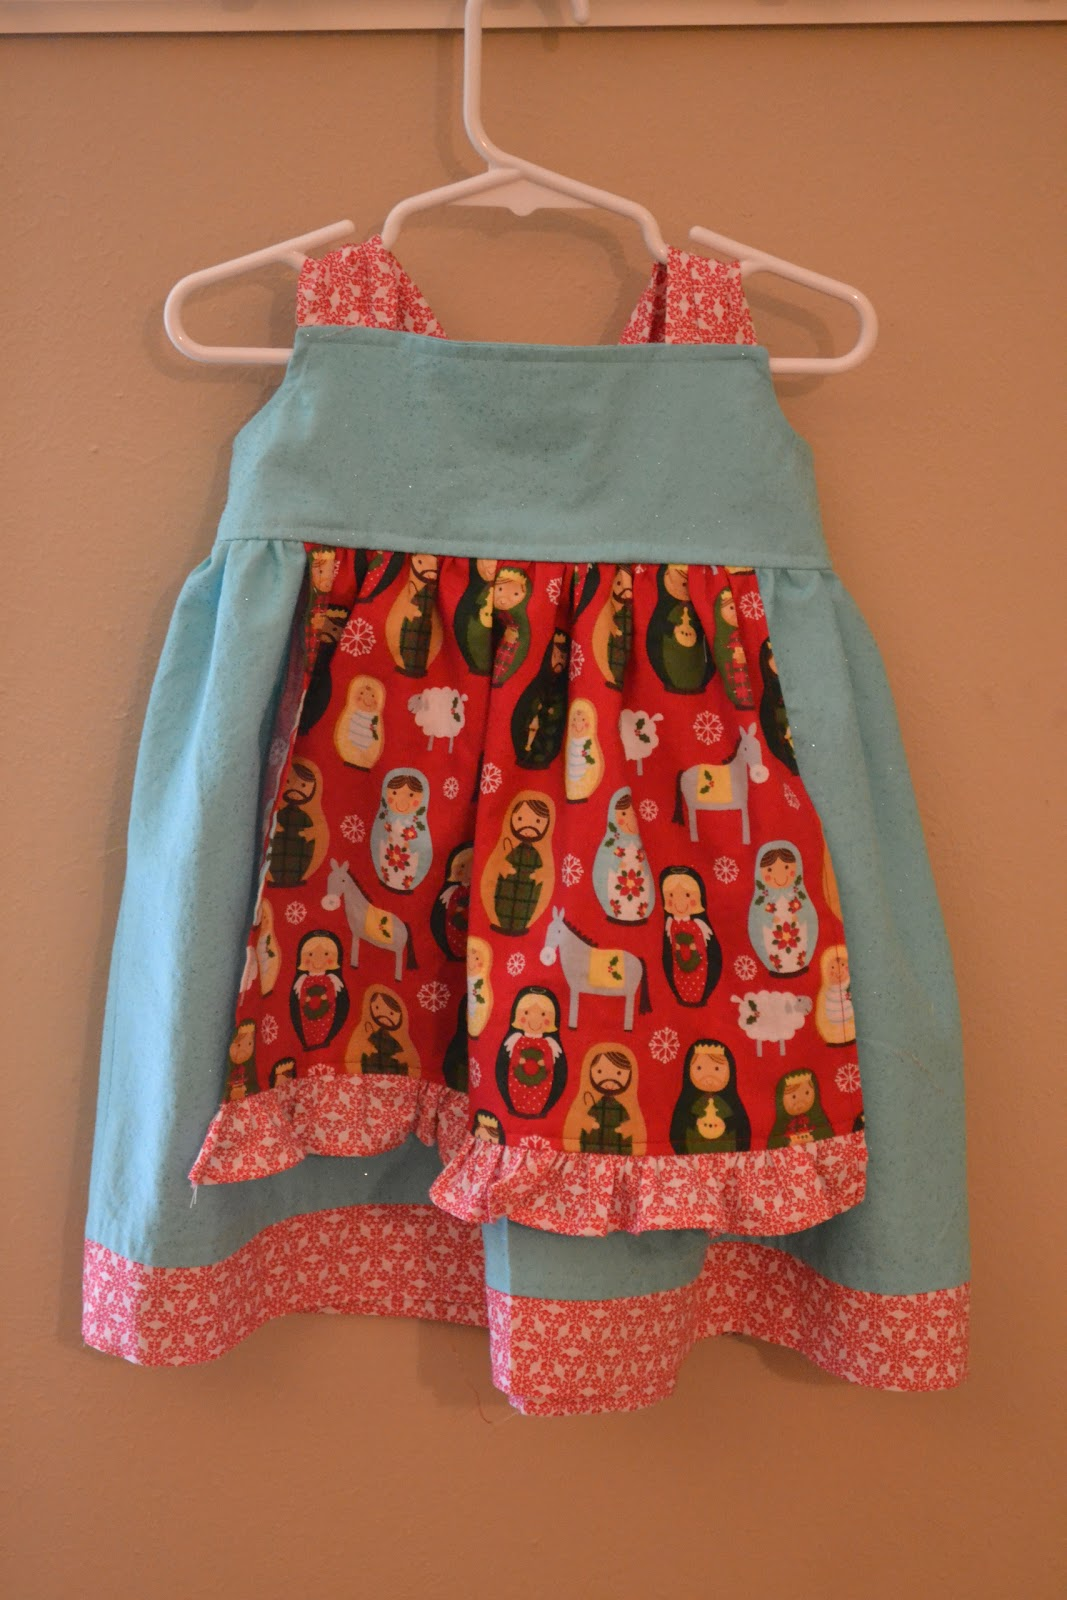 White apron joann fabrics - Is Was Another Situation Where A Cute Fabric Drove The Dress Idea I Happened Upon This Adorable Red Matryoshka Nativity Fabric At Joann S And Thought It